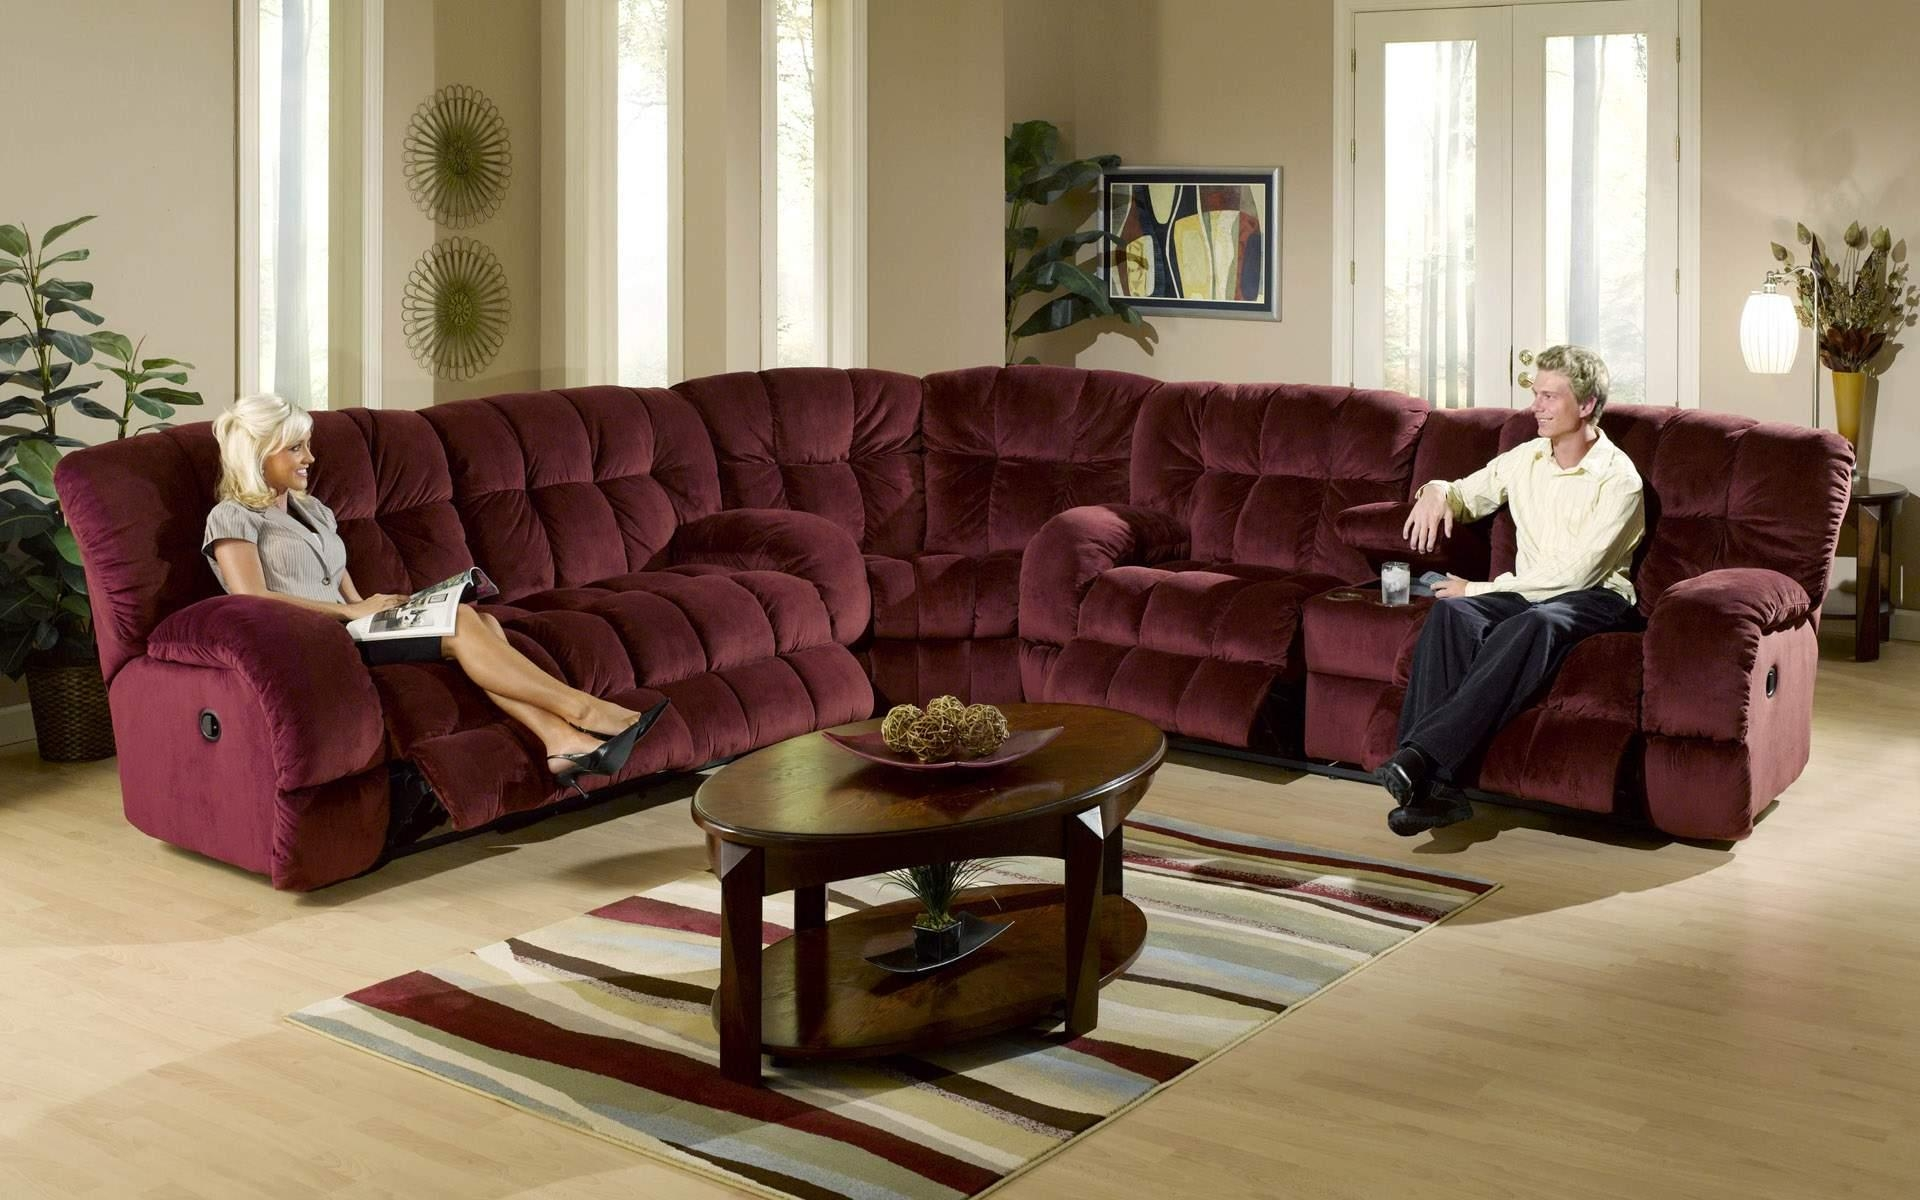 Sofas Center : Luxury High Quality Sectional Sofa With Additional Within High Quality Leather Sectional (Image 19 of 20)